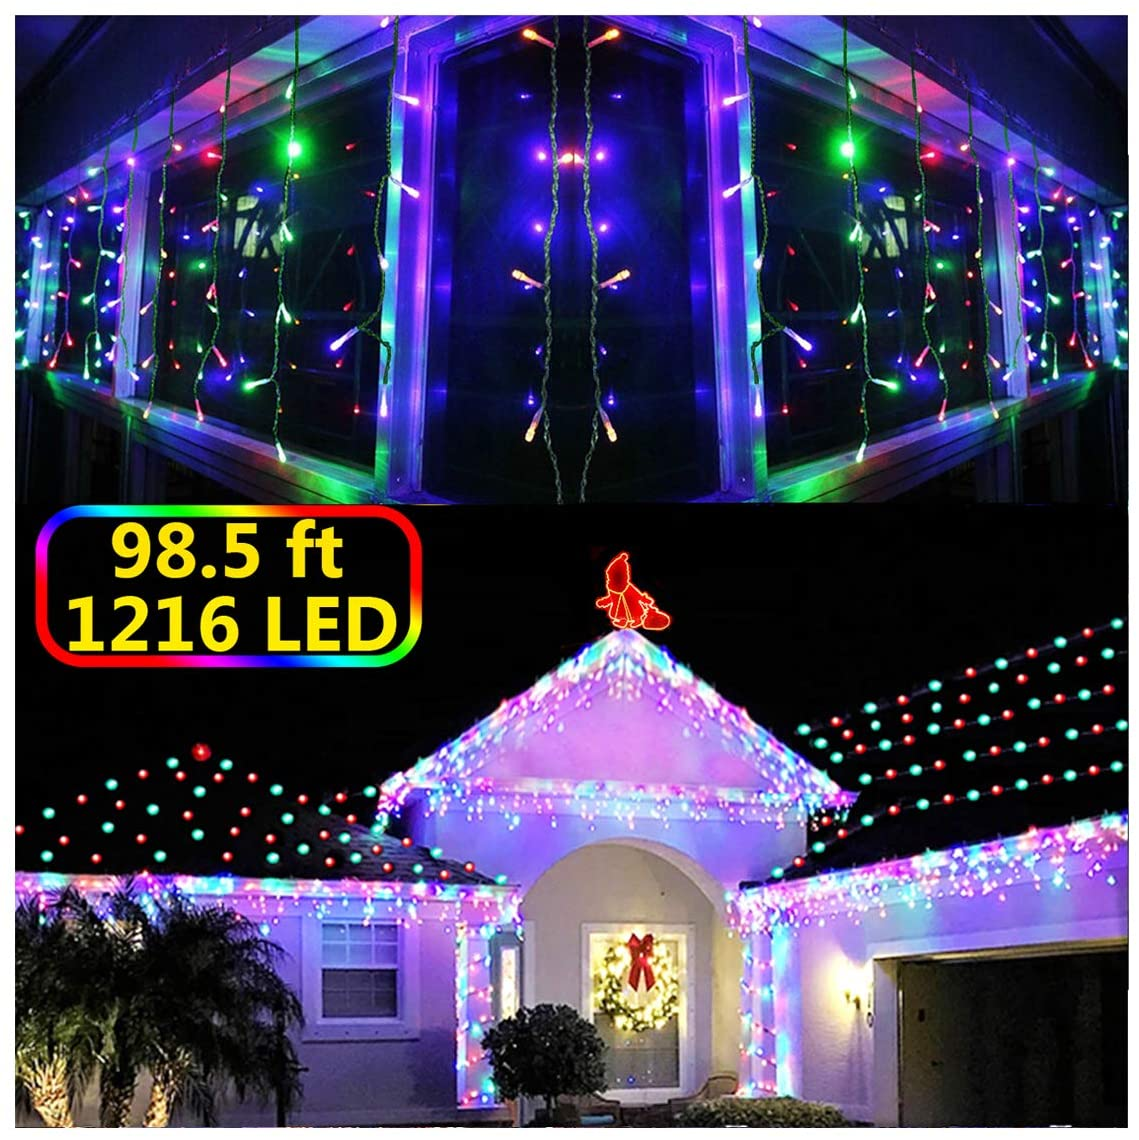 KNONEW LED Icicle Lights, 98ft 1216 LED, 8 Modes, Curtain Fairy Light Clear Wire LED String Decor for Christmas/Thanksgiving/Easter/Halloween/Party Backdrops Decorations (Multicolor)